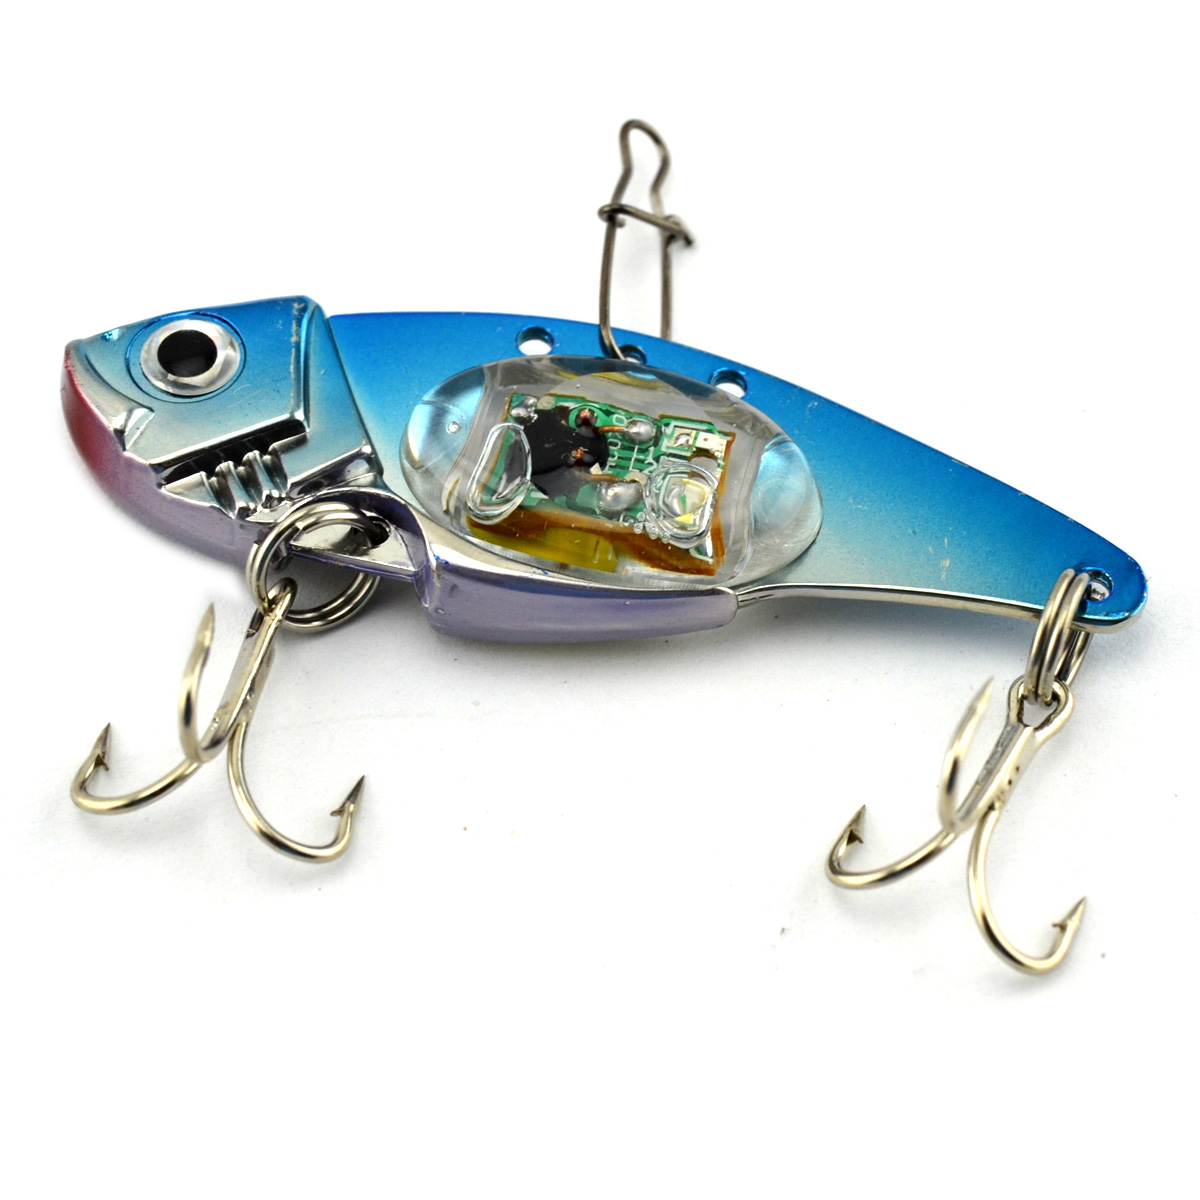 Alloy Lifelike Fishing Lure Bait Underwater Vibration Sinking Artificial Lures with Flash LED Light by Unbranded